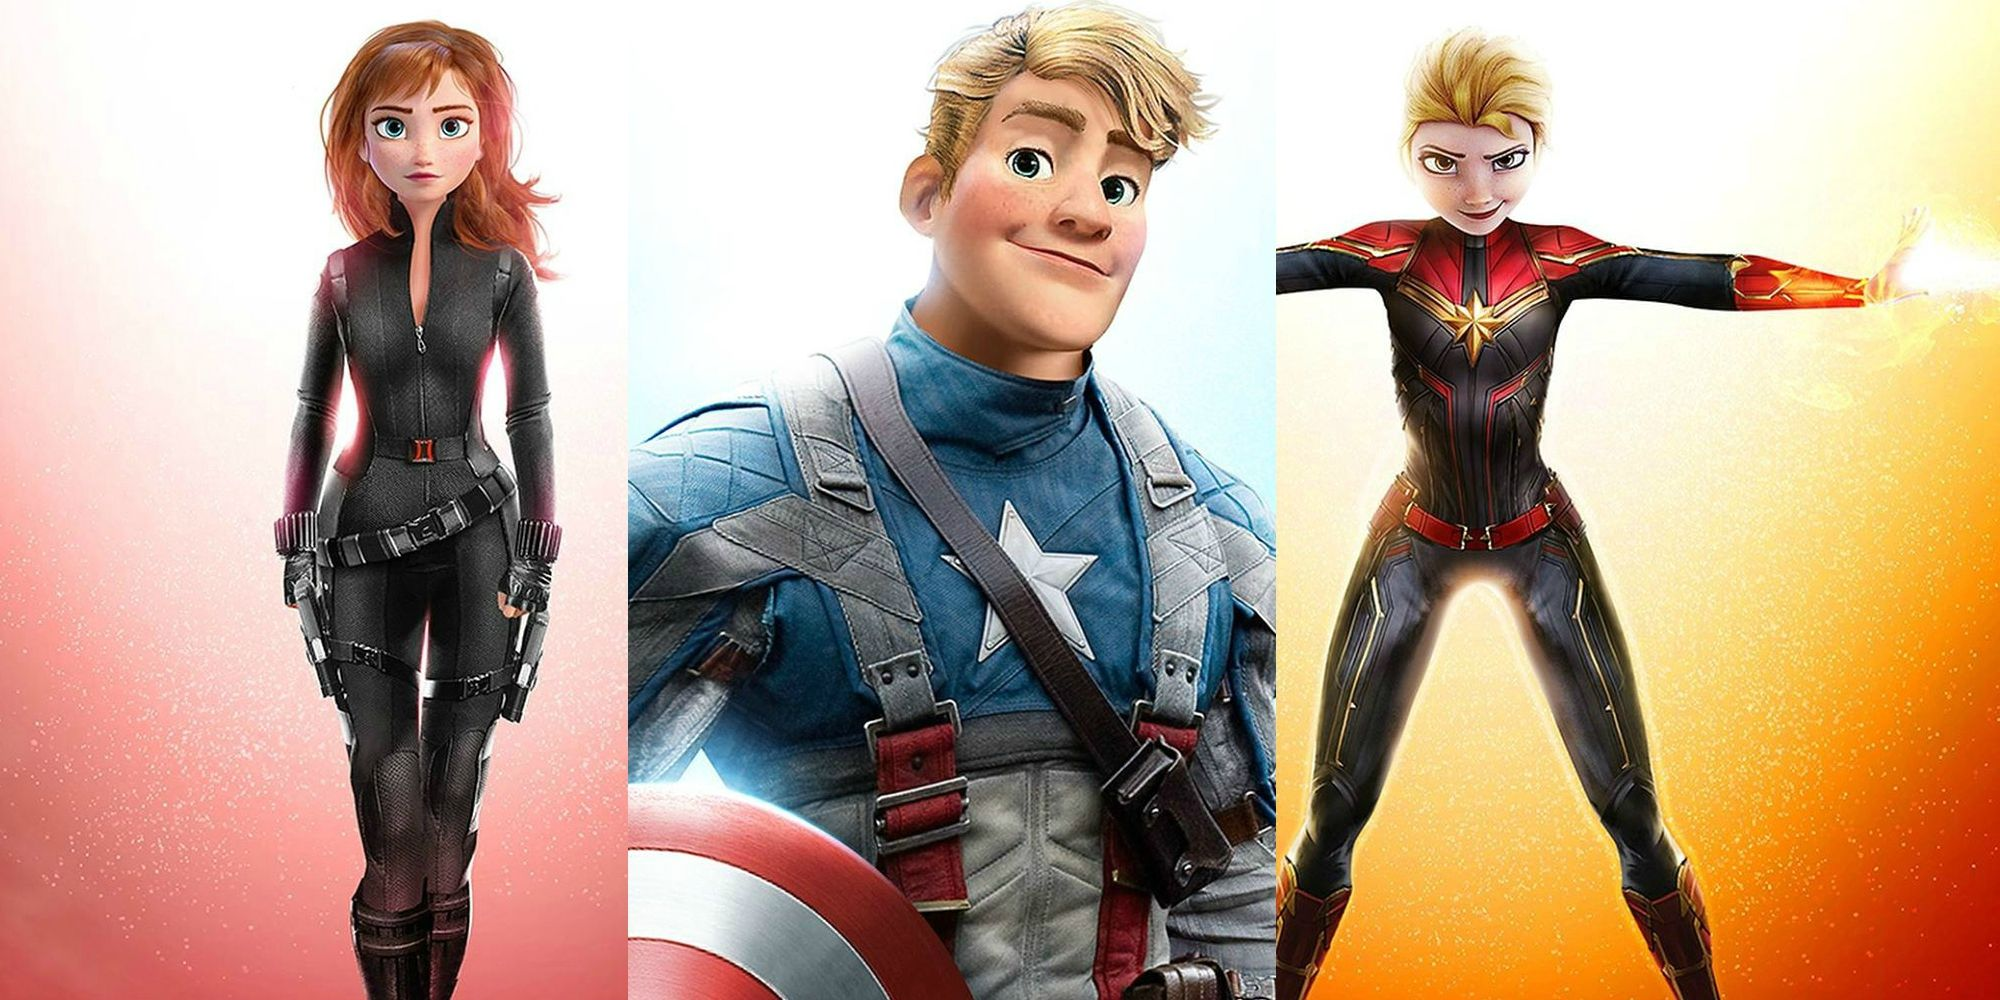 The Avengers Look Amazing As Disney Animated Characters